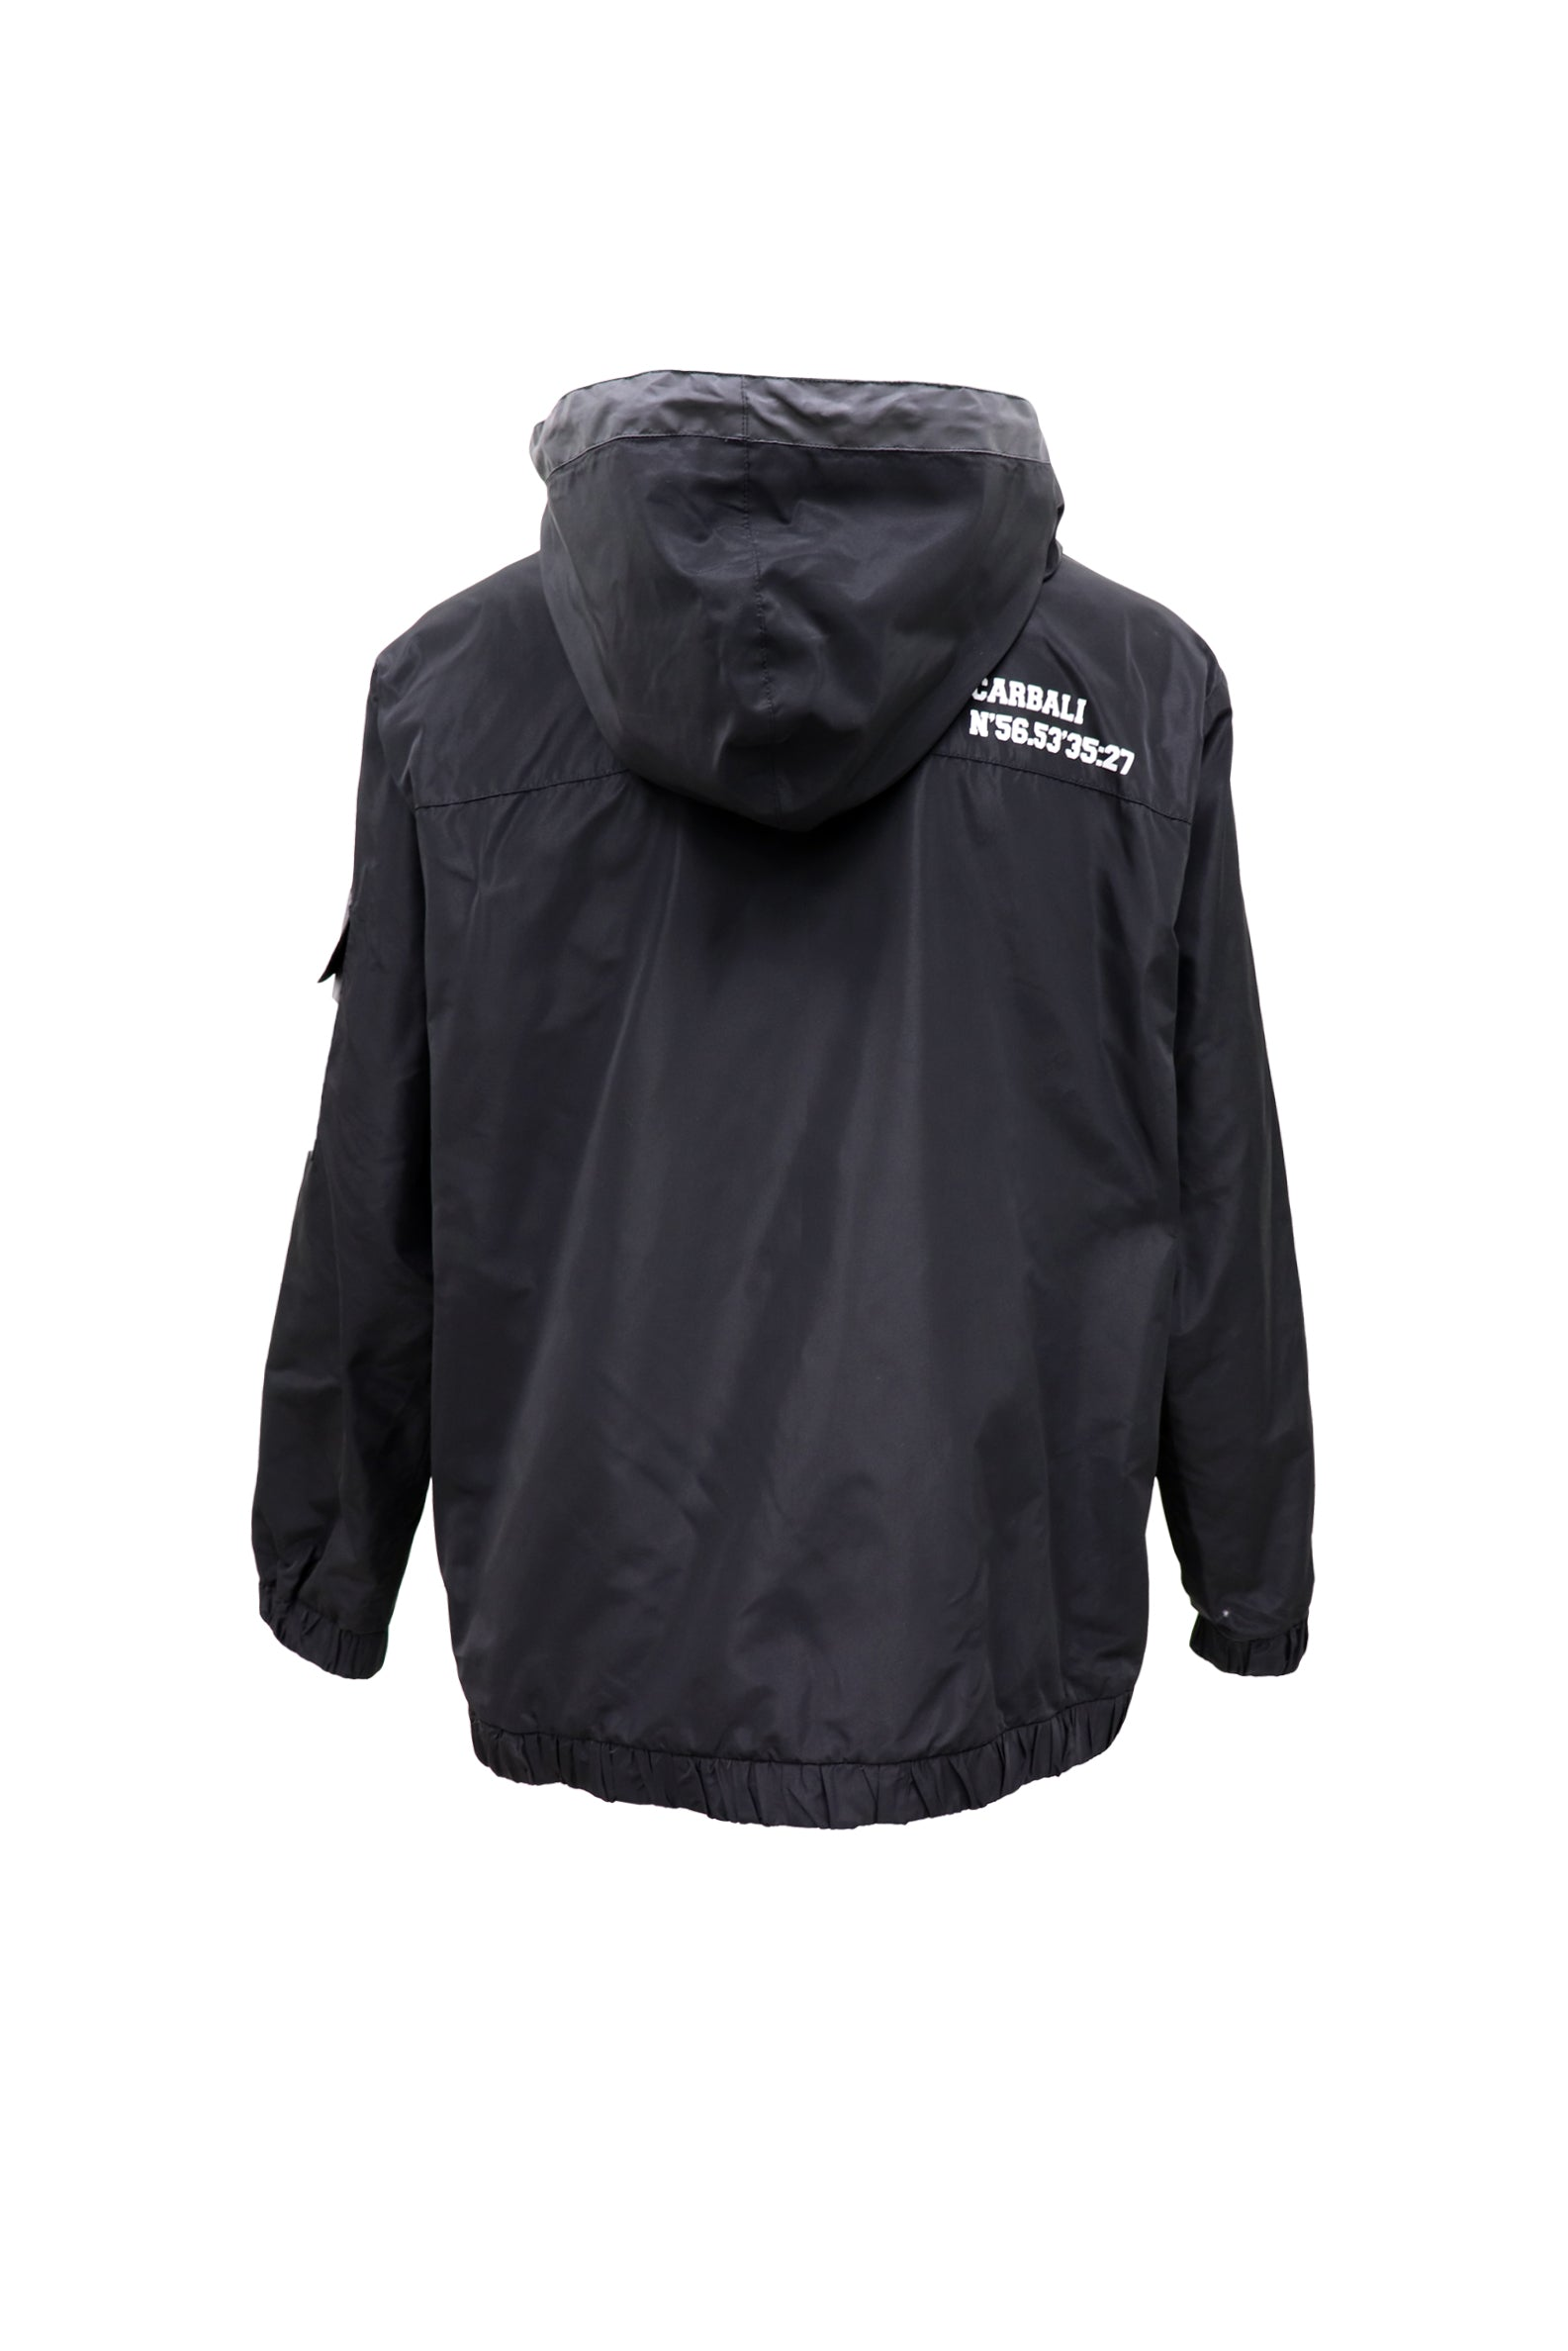 Over the head sport hoody in black